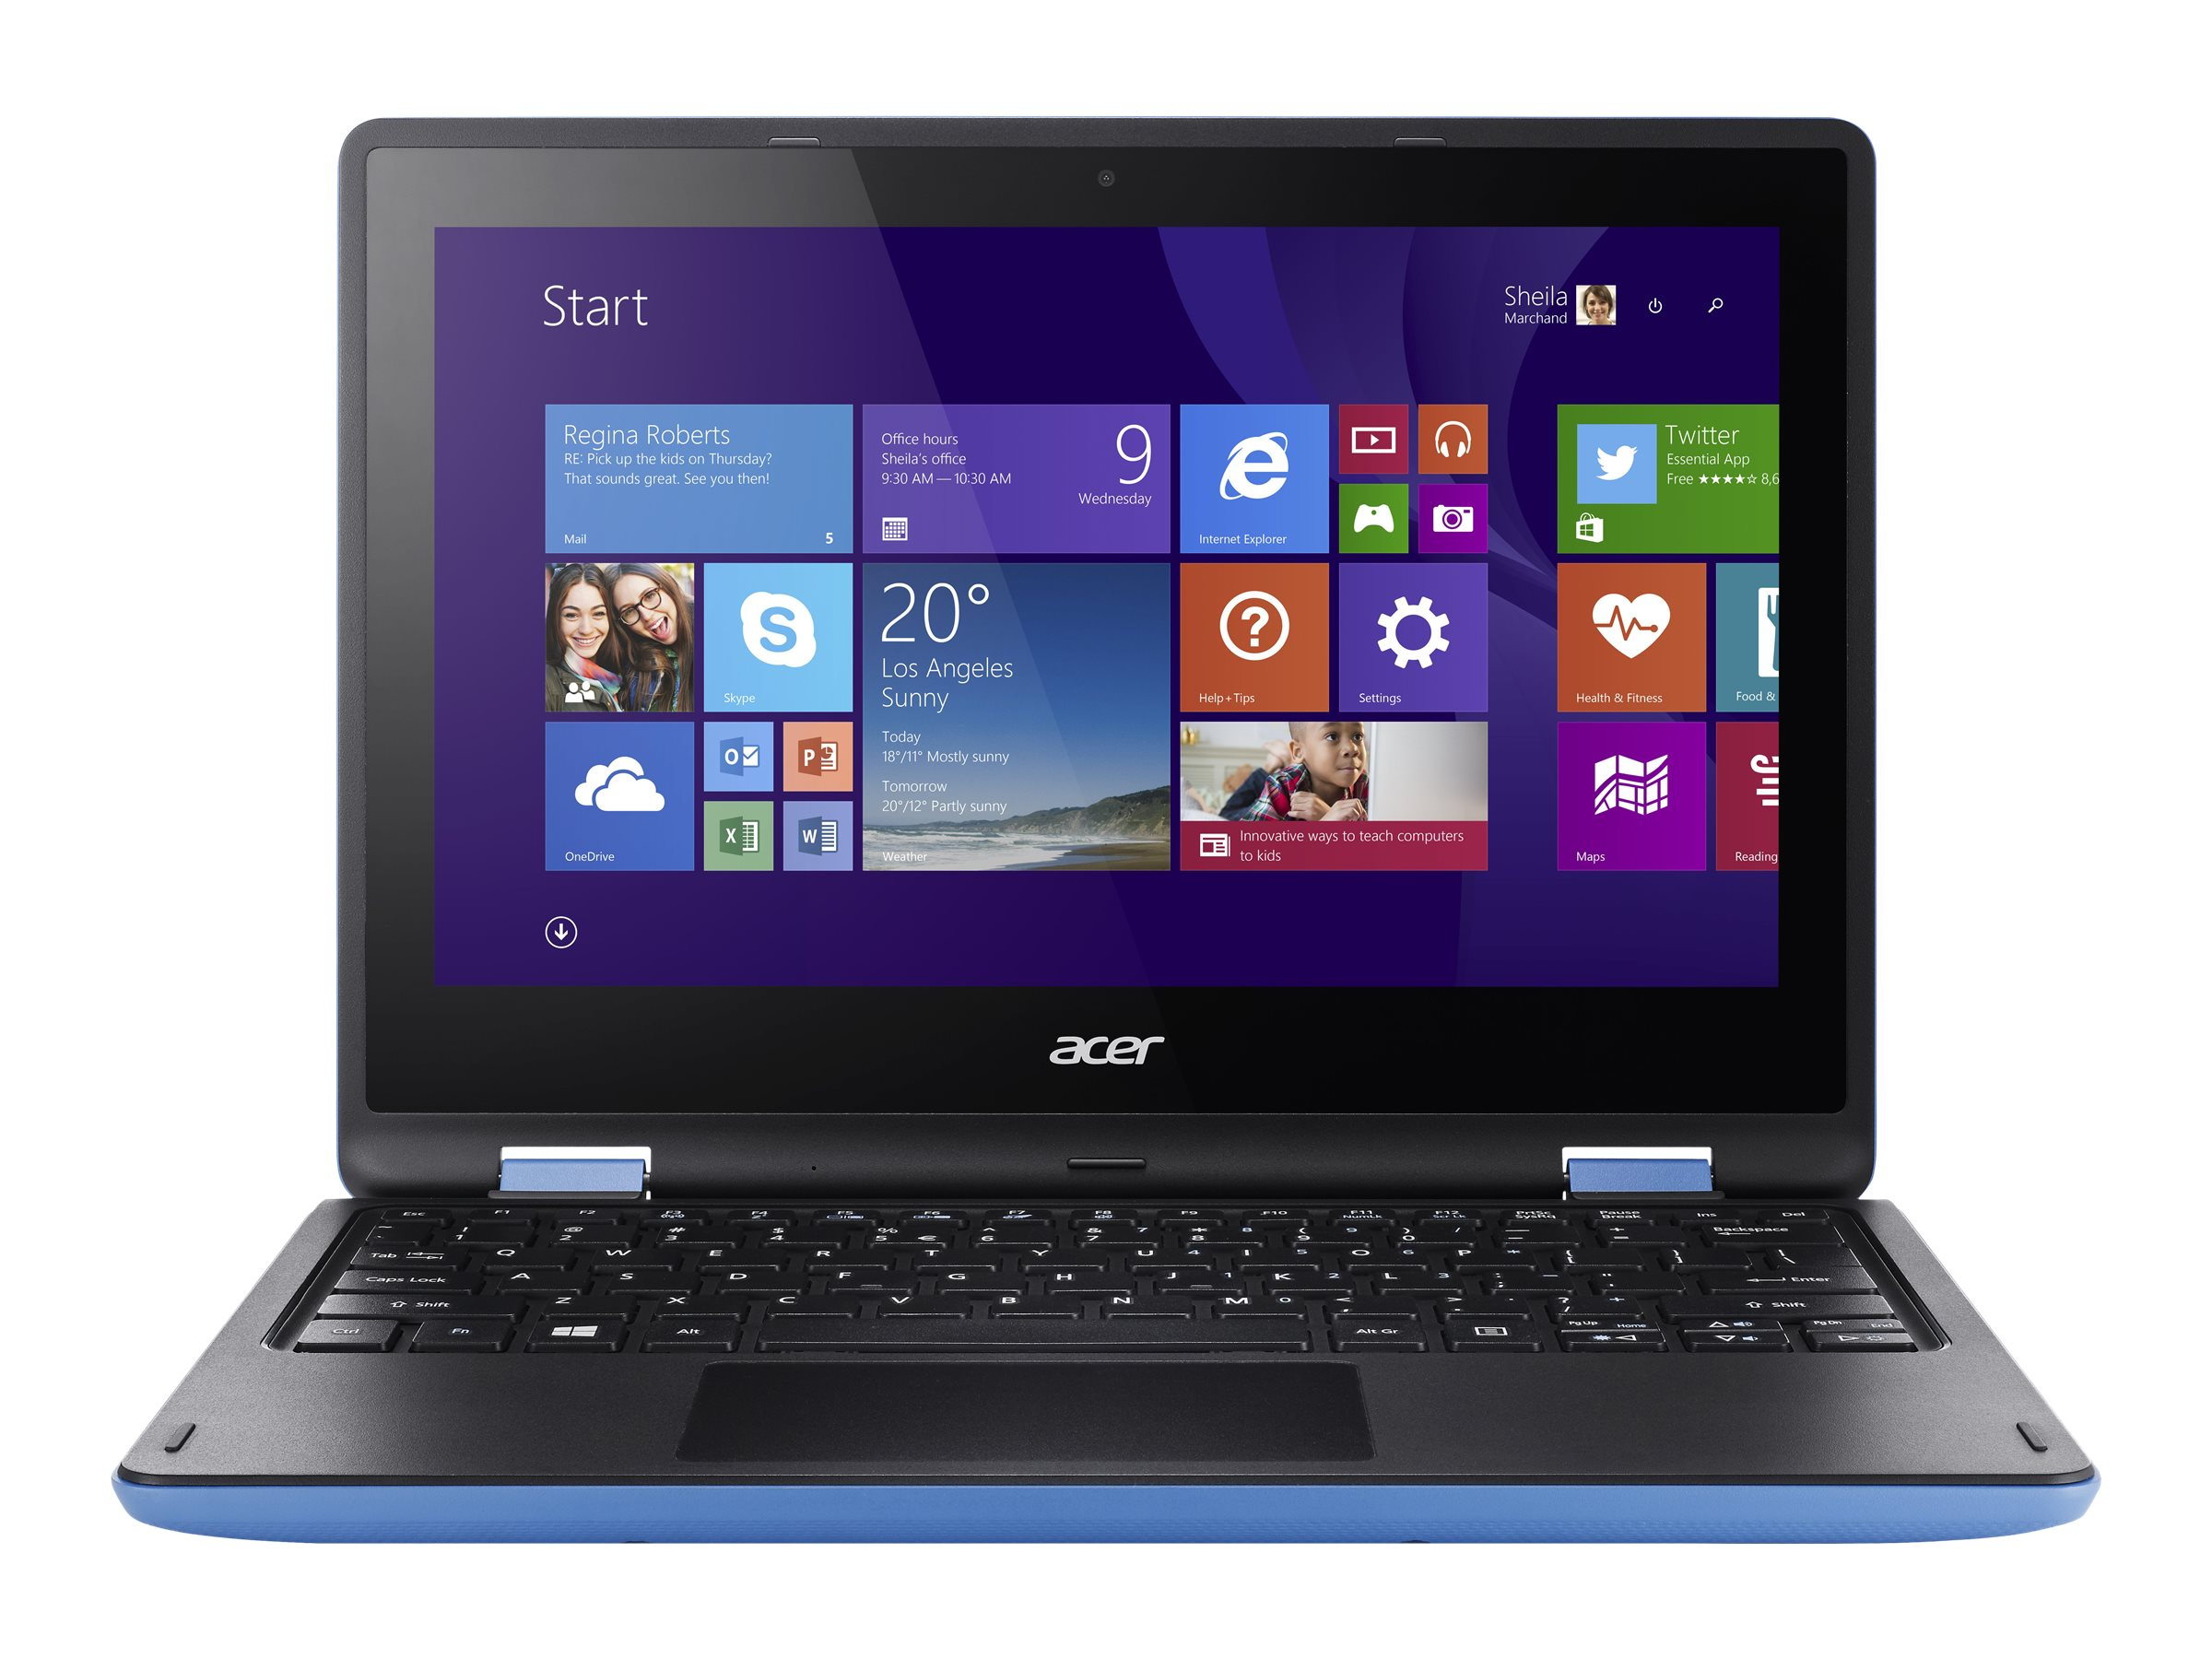 Acer NX.G10AA.008 Image 9